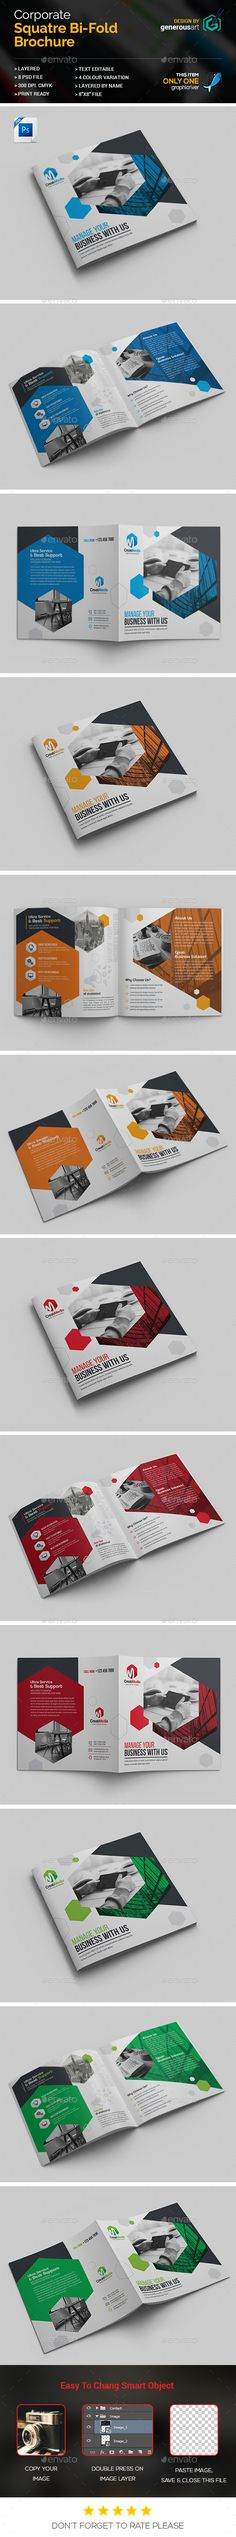 Business Square Bi-Fold Template - Corporate Brochures Download here : https://graphicriver.net/item/business-square-bifold-template/19472229?s_rank=27&ref=Al-fatih